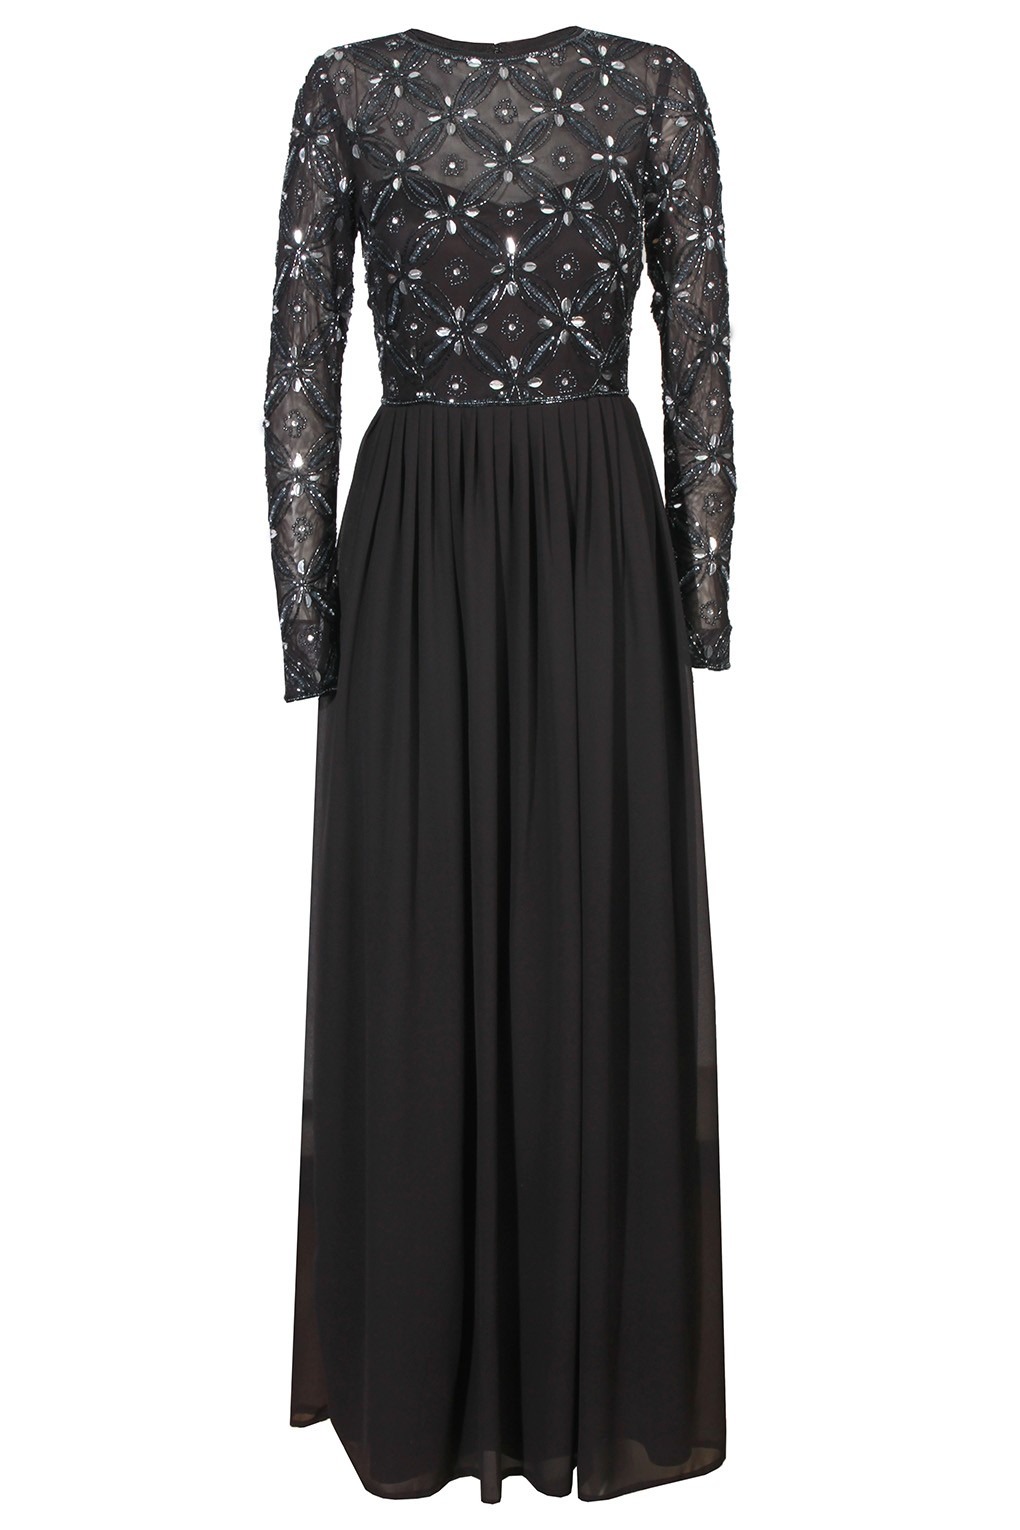 Lace Amp Beads Carnation Dark Grey Maxi Dress Party Dresses